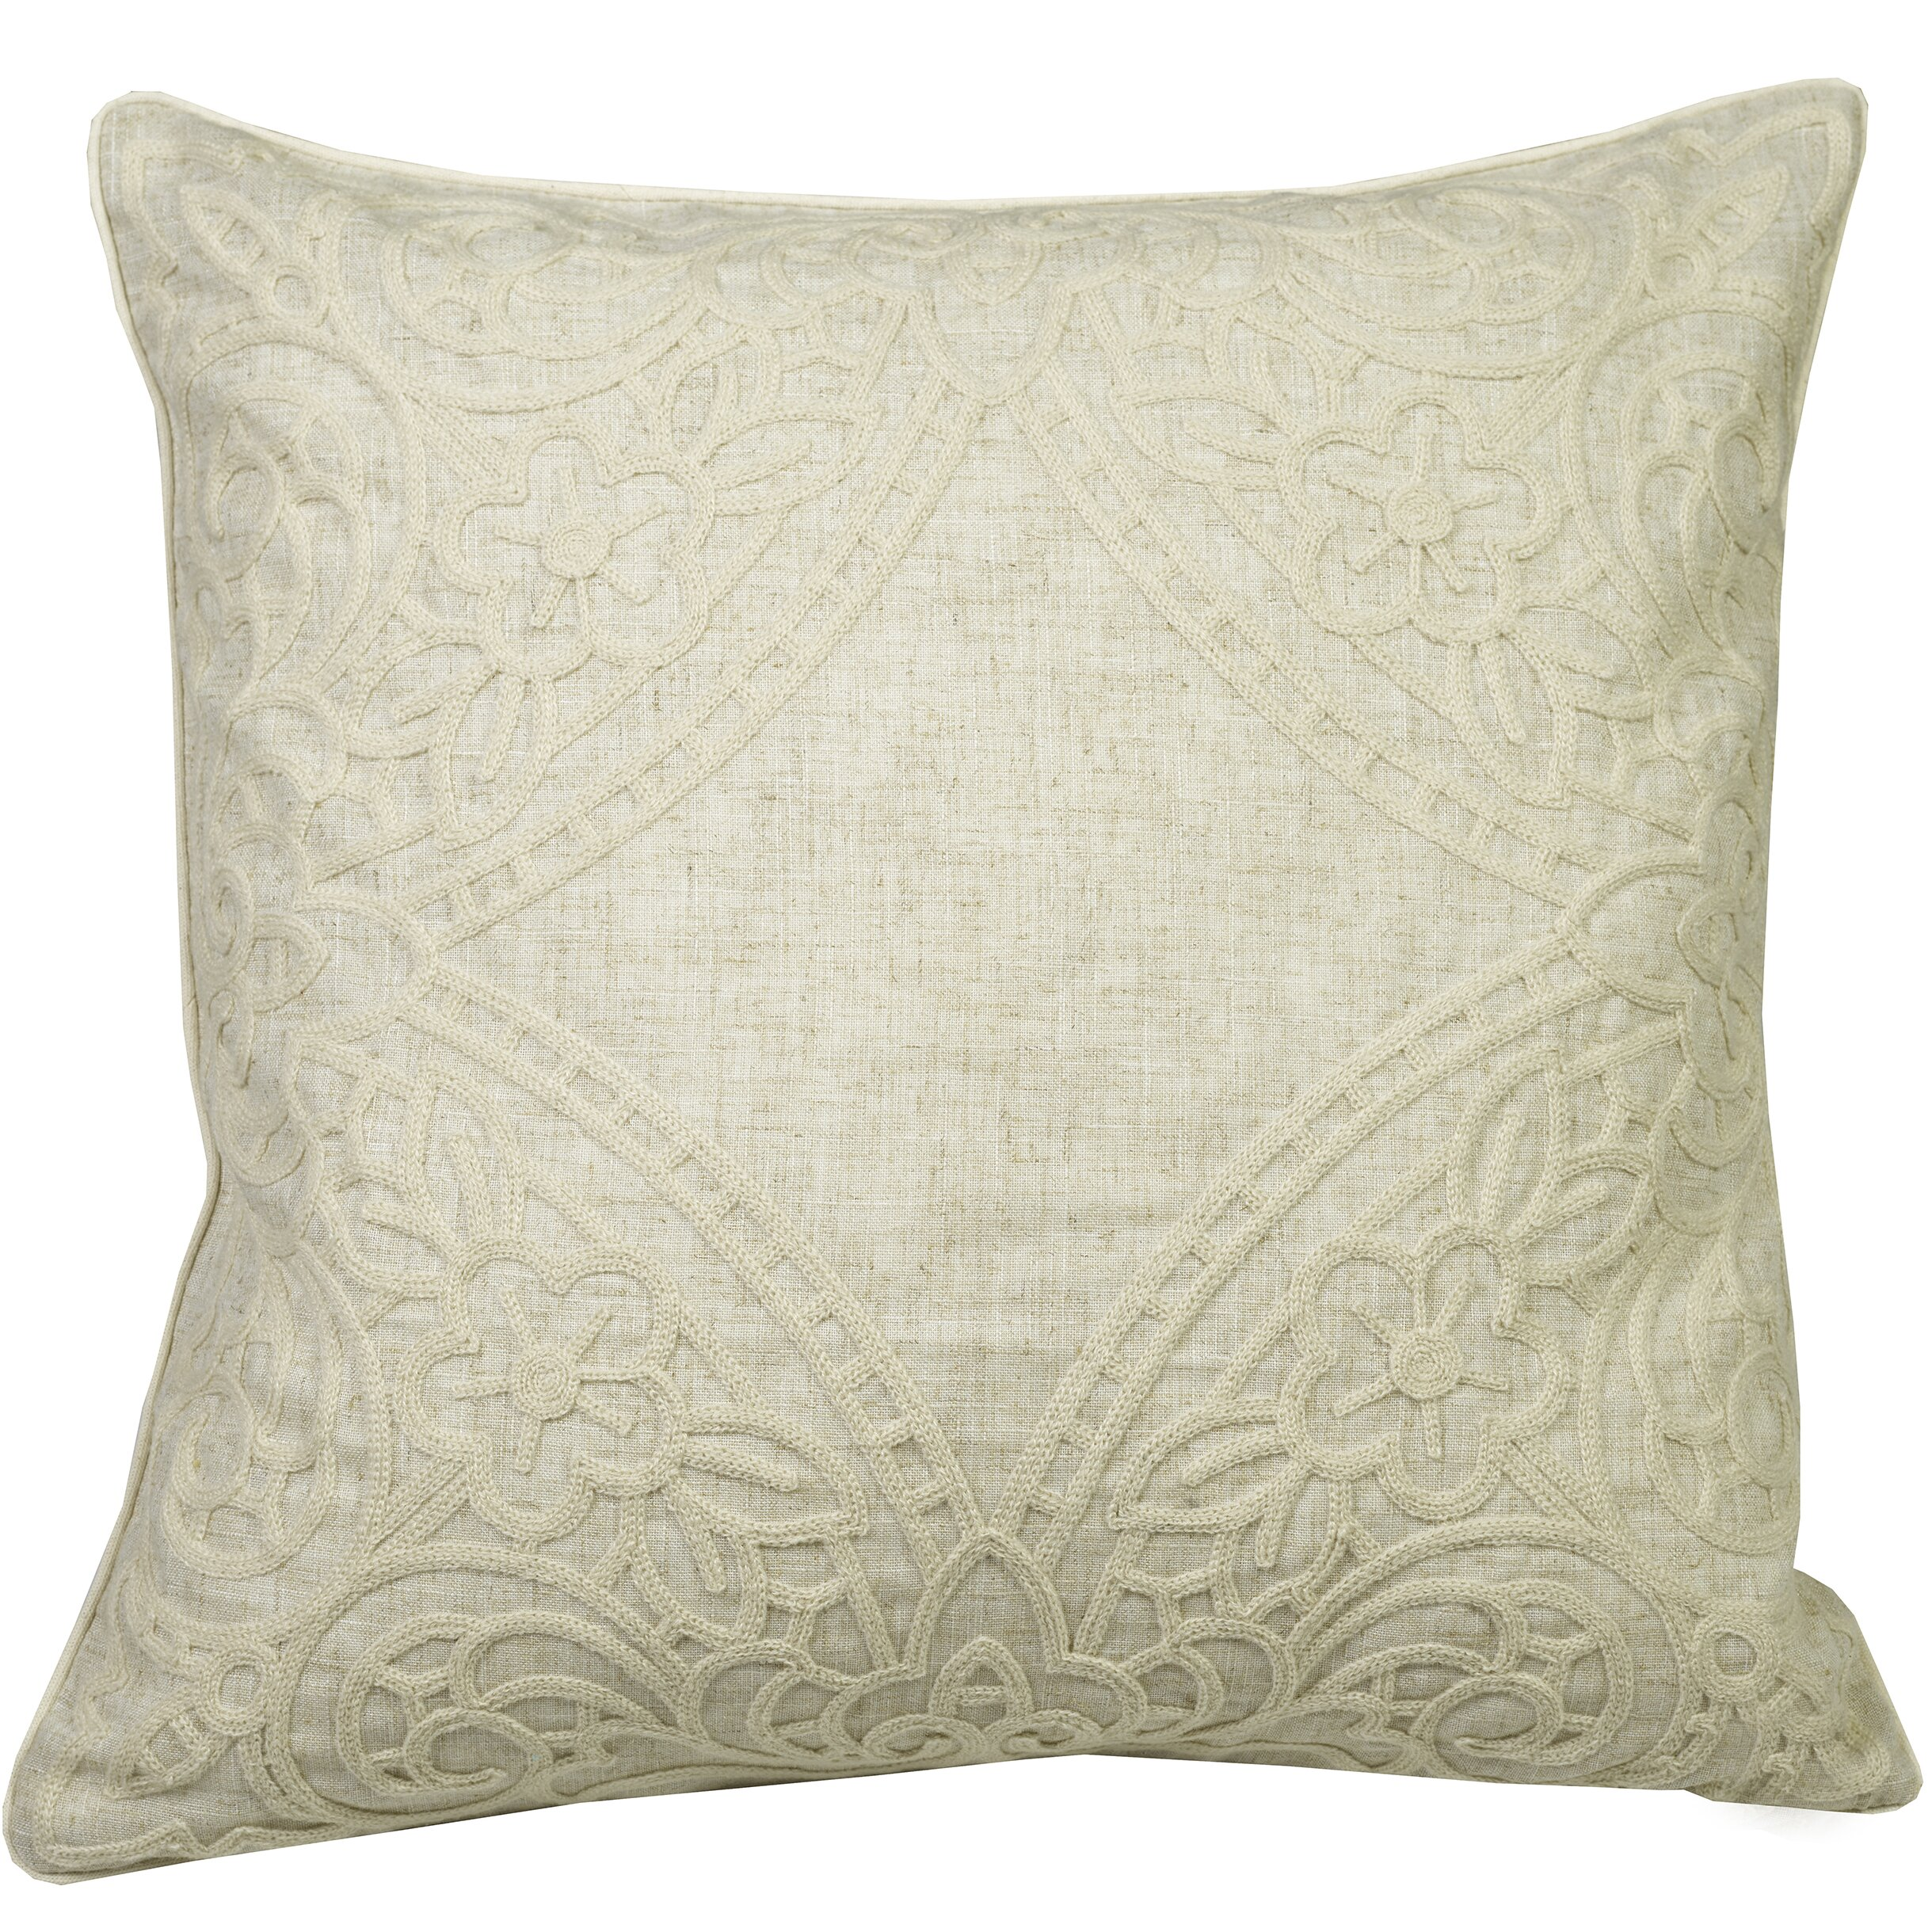 Throw Pillows With Lace : Westex Urban Loft Lace Throw Pillow Wayfair